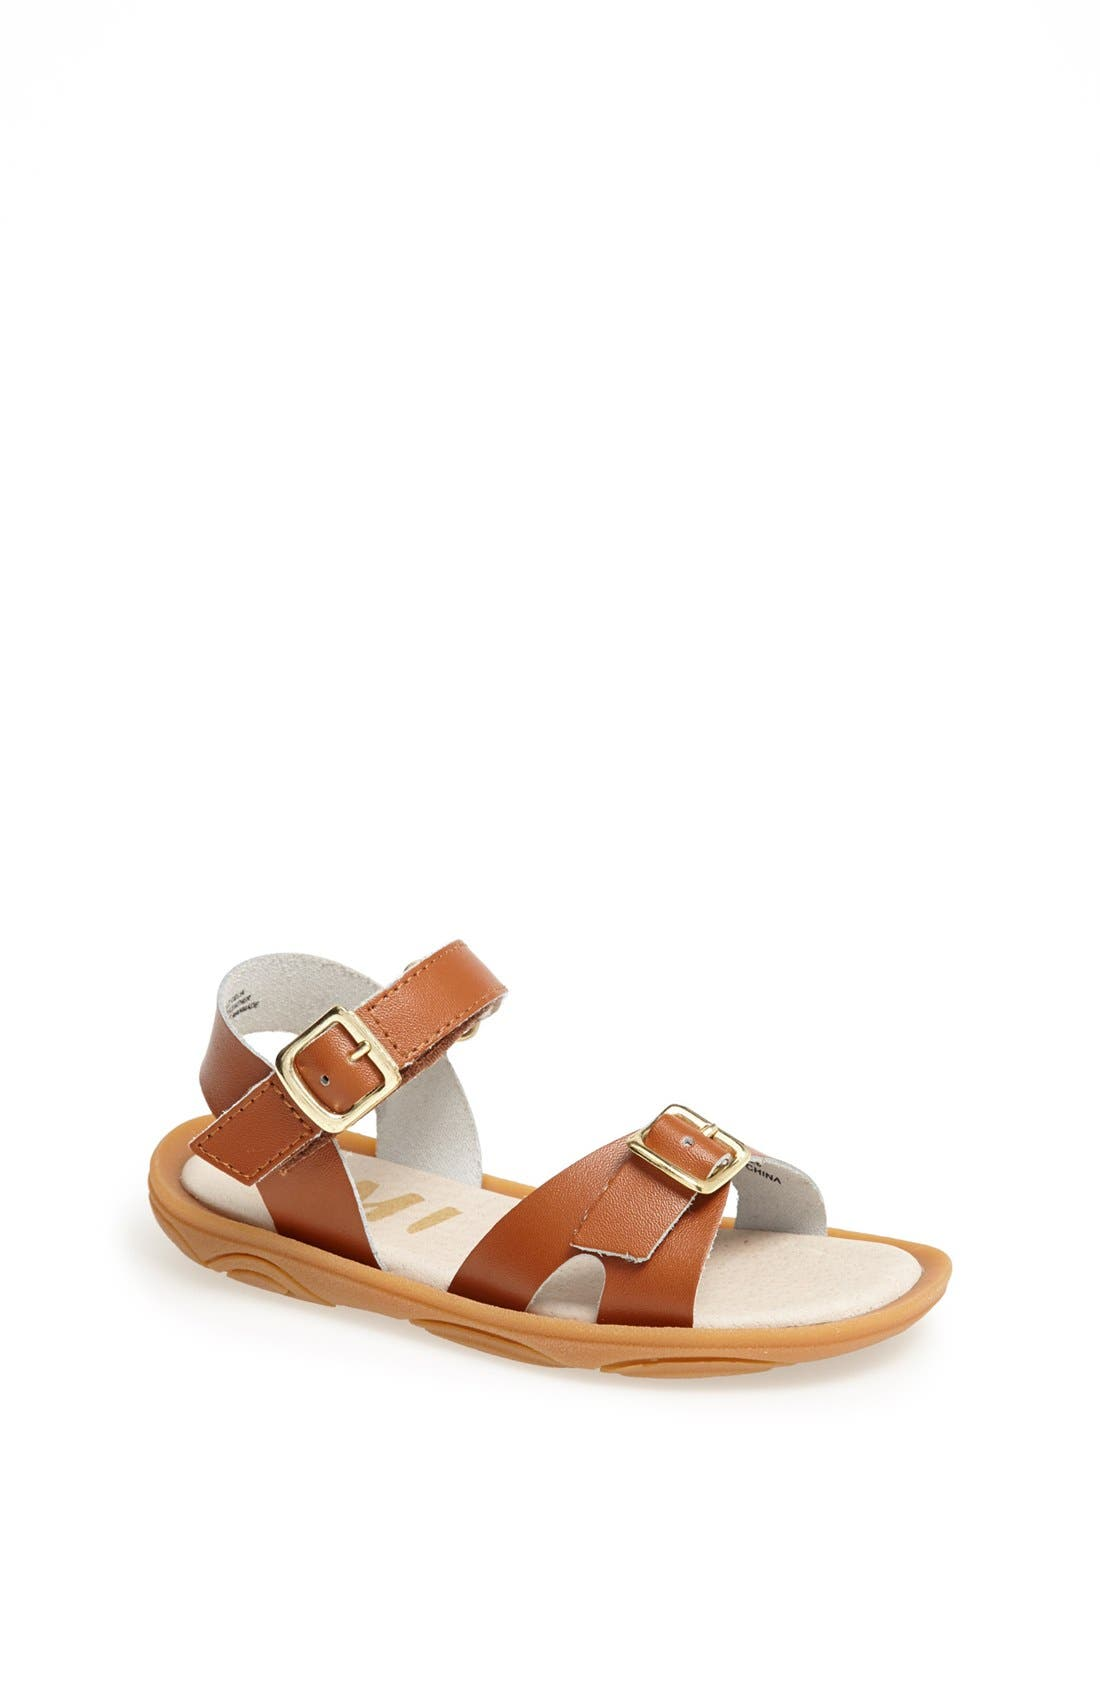 Alternate Image 1 Selected - Umi 'Celia' Sandal (Walker, Toddler & Little Kid)